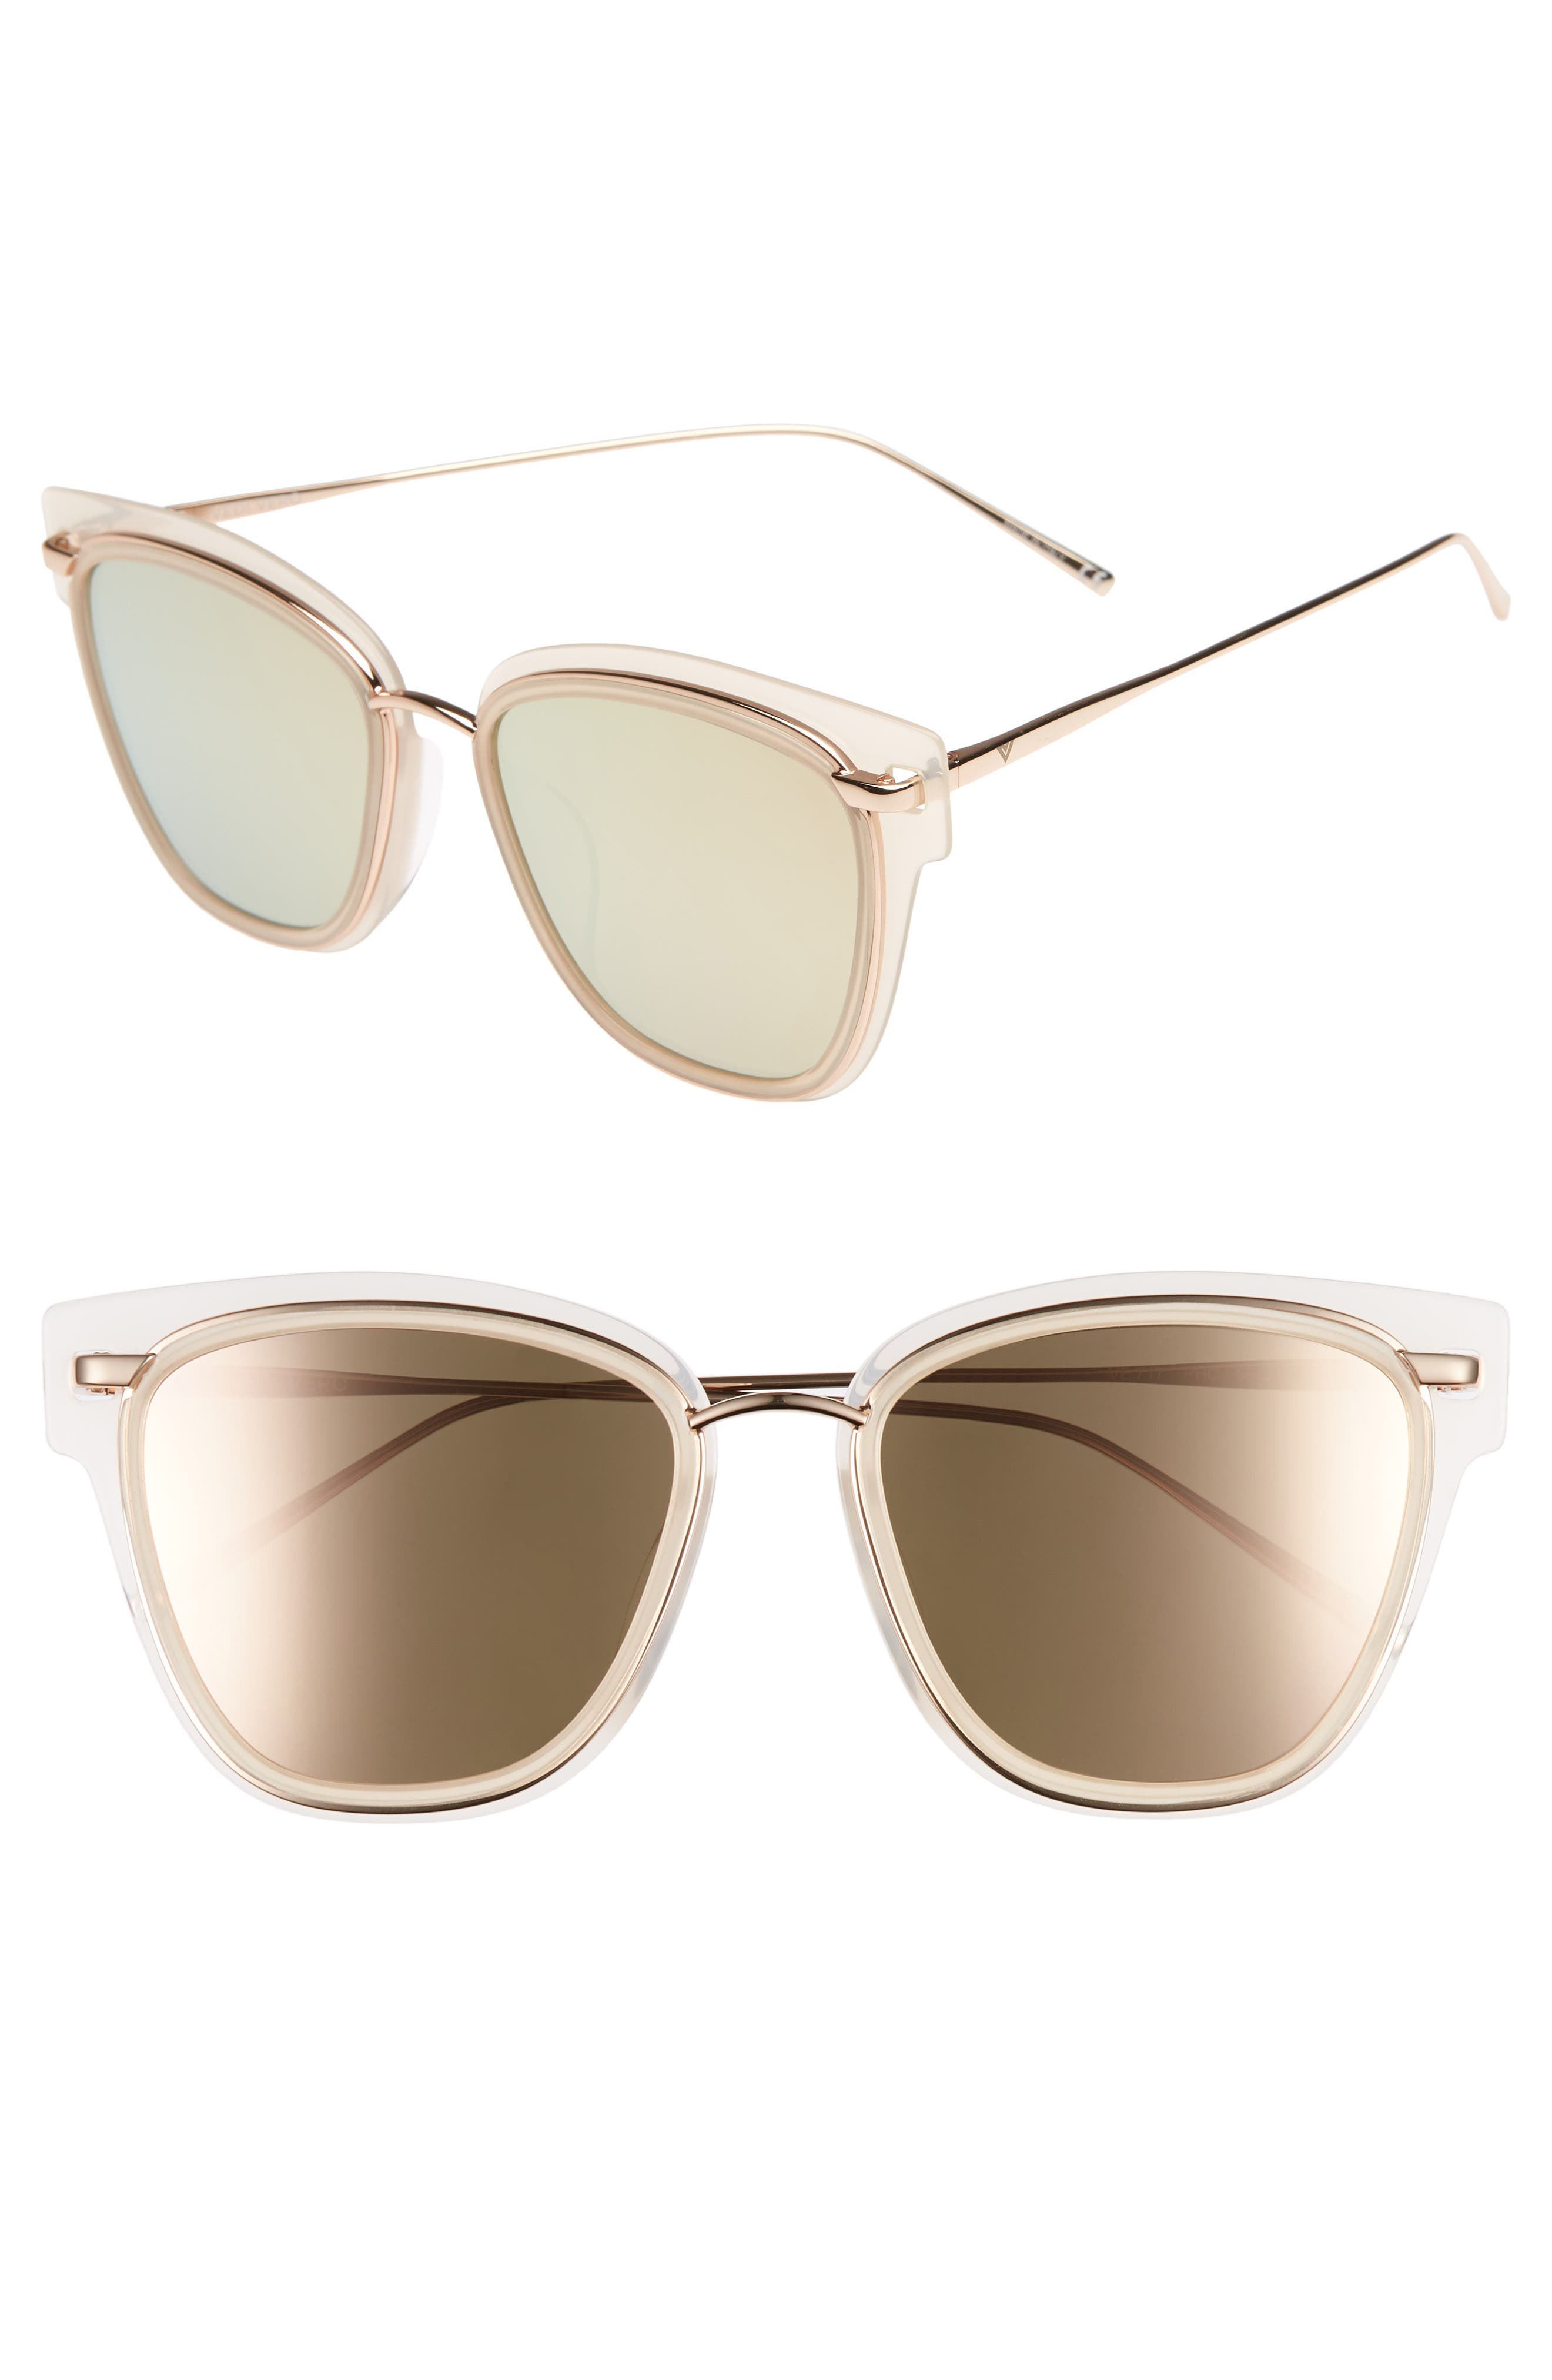 VEDI VERO 56Mm Square Sunglasses - Gold/ Peach